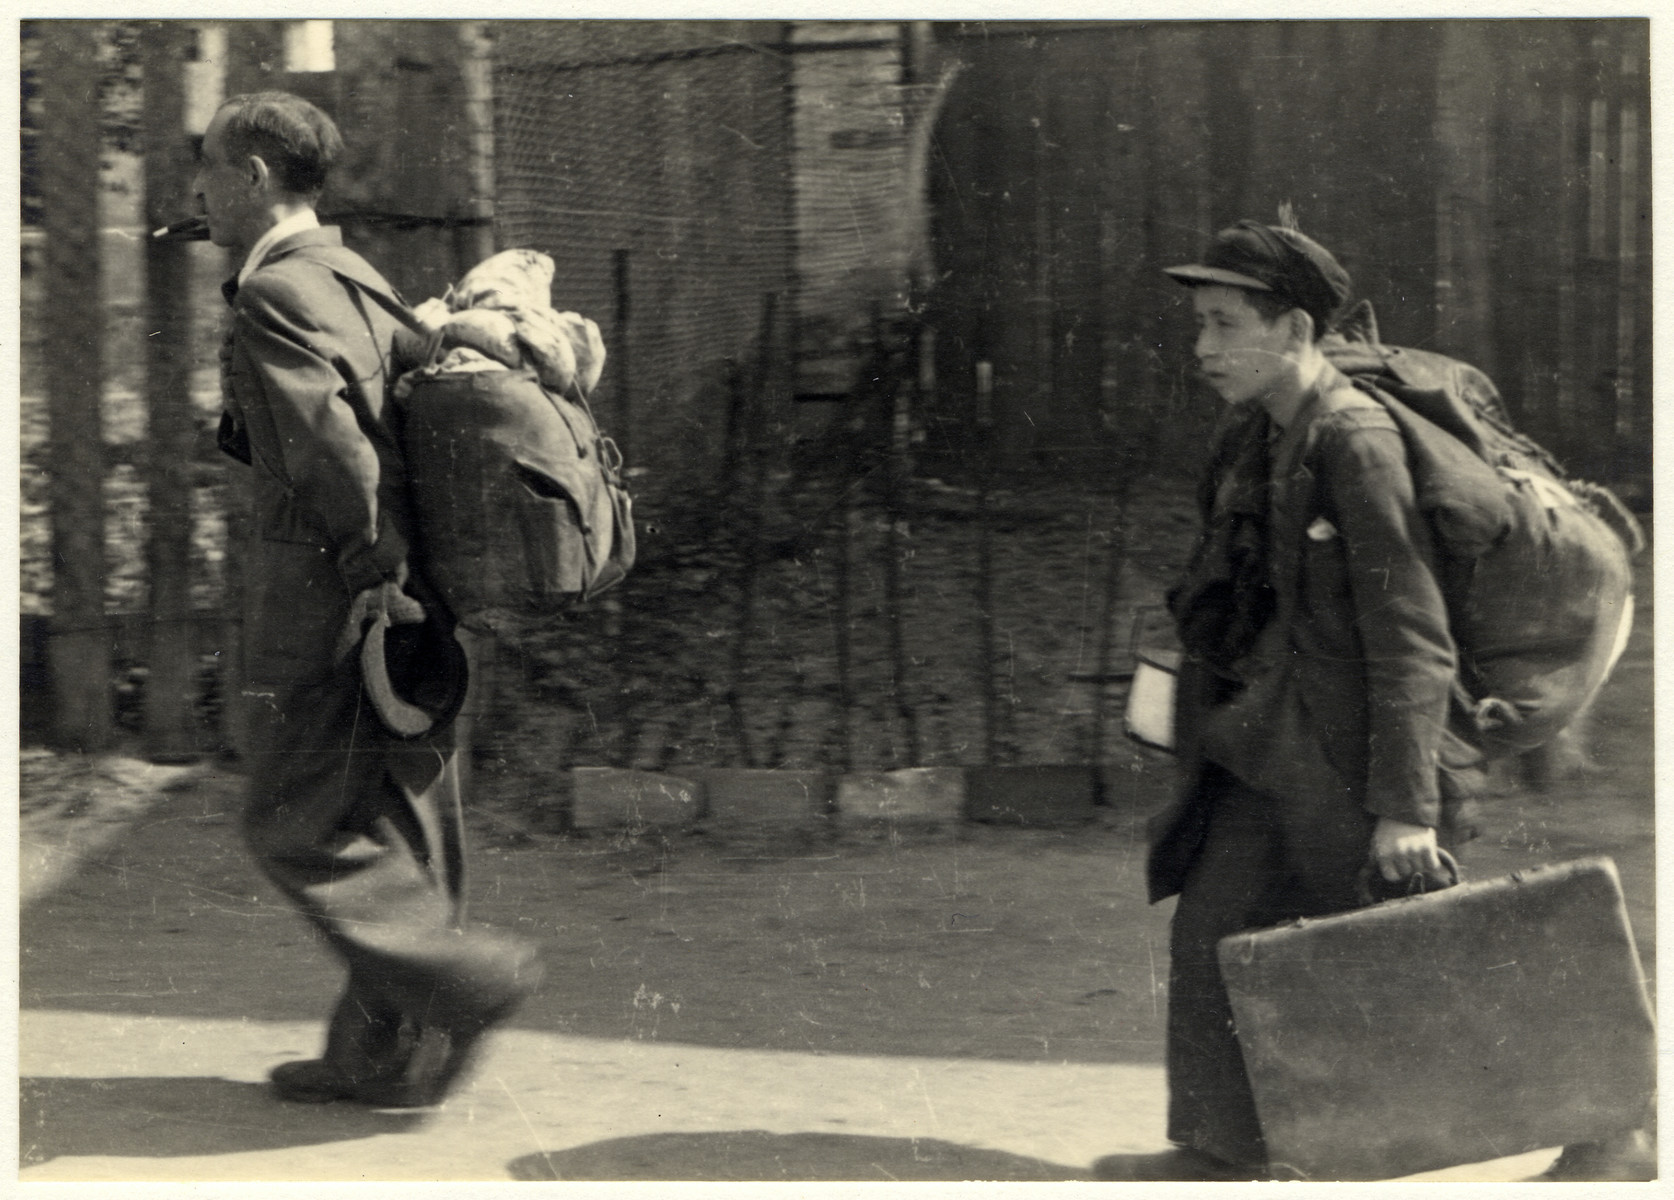 A man and a boy carry their luggage on the way to the deportation train in the Lodz ghetto.